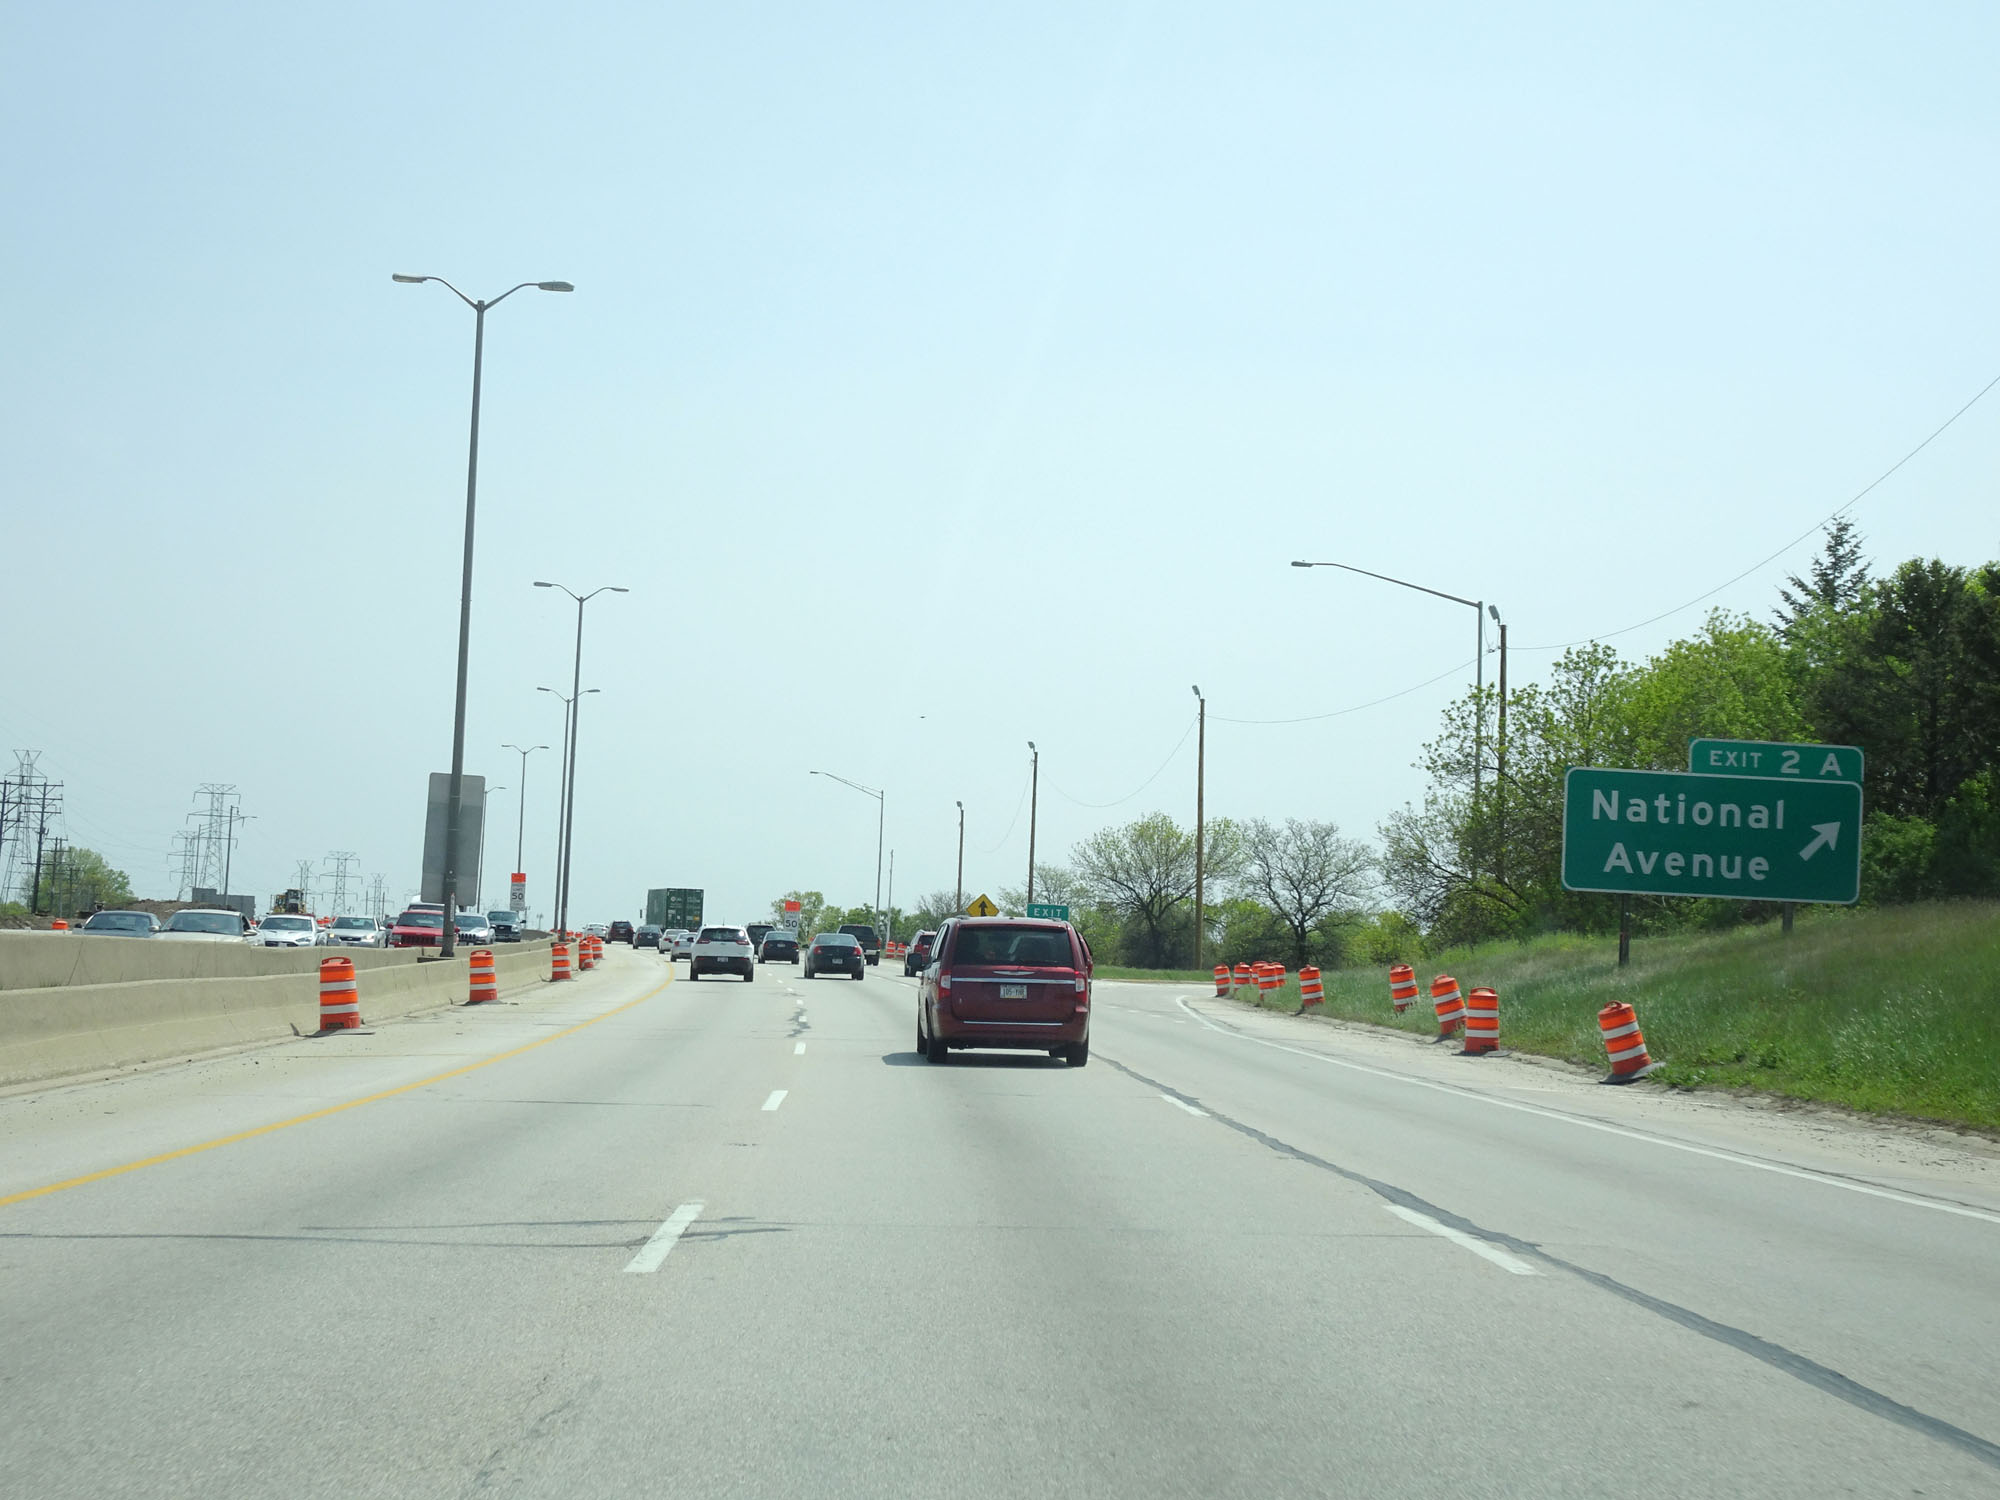 Interstate 894 East / Interstate 41 South at Exit 2A: National Avenue  (Photo taken 5/21/16).